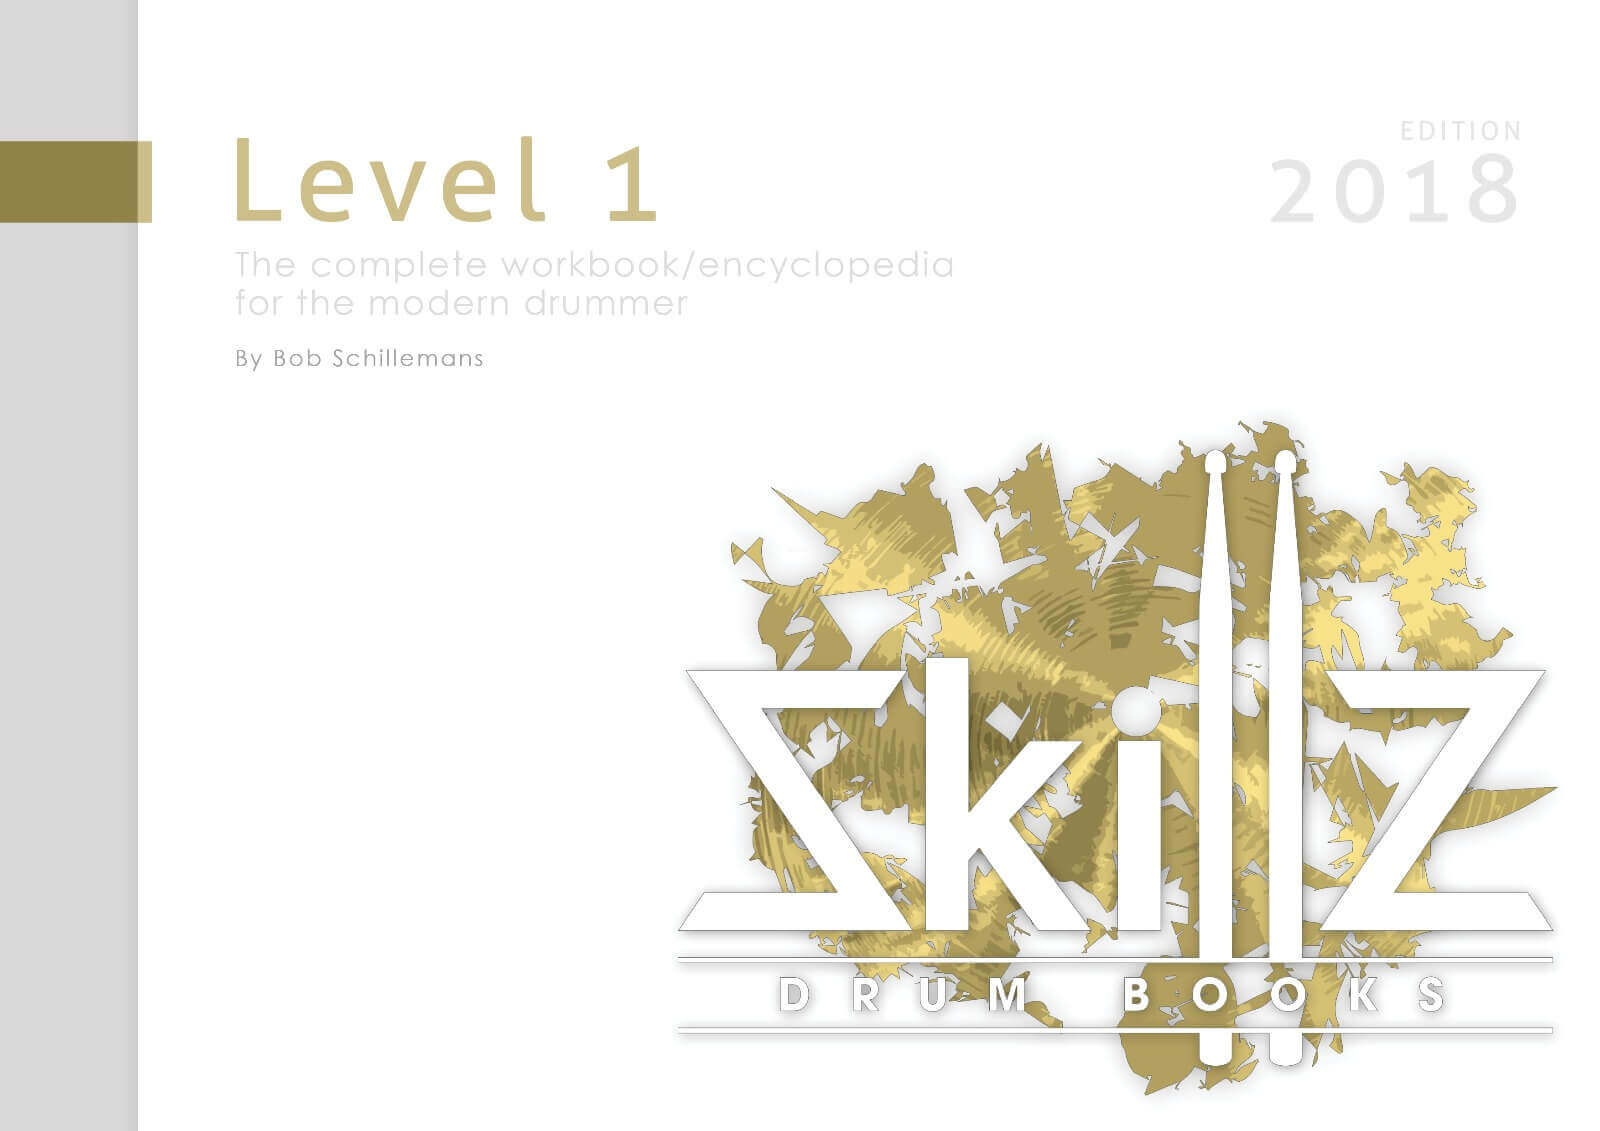 Skillz Drum Books Level 1 - The Complete Workbook Encyclopedia For The Modern Drummer Cover